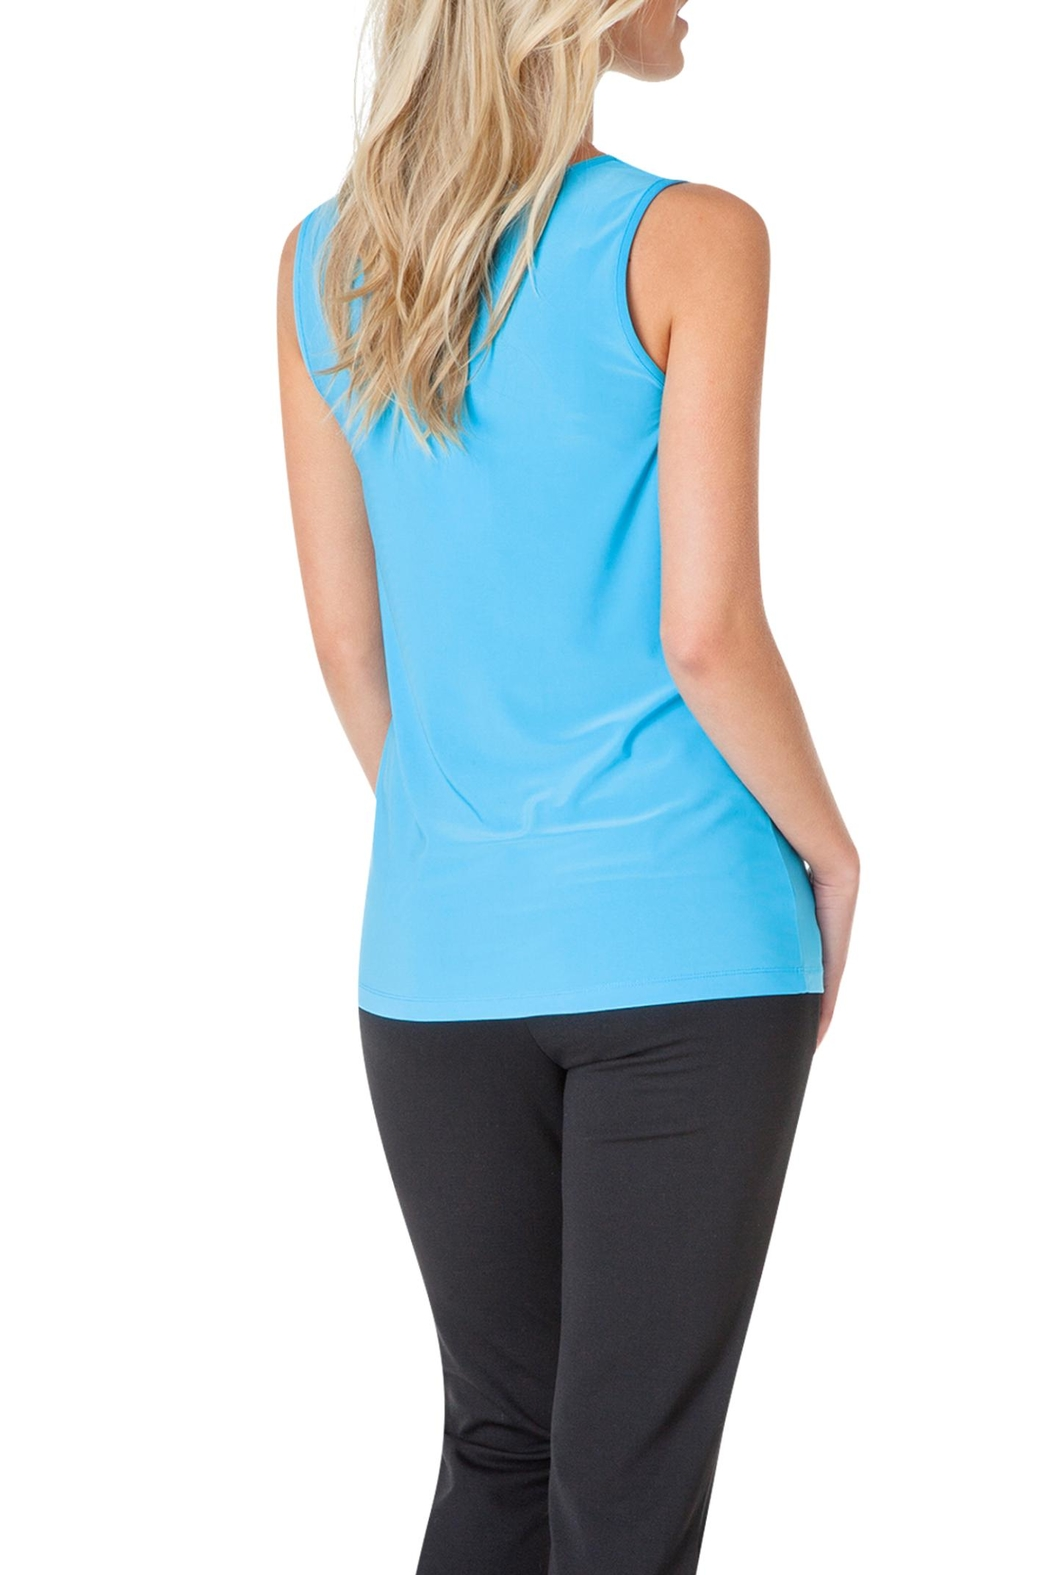 Colletta Blue Sleeveless Top - Front Full Image